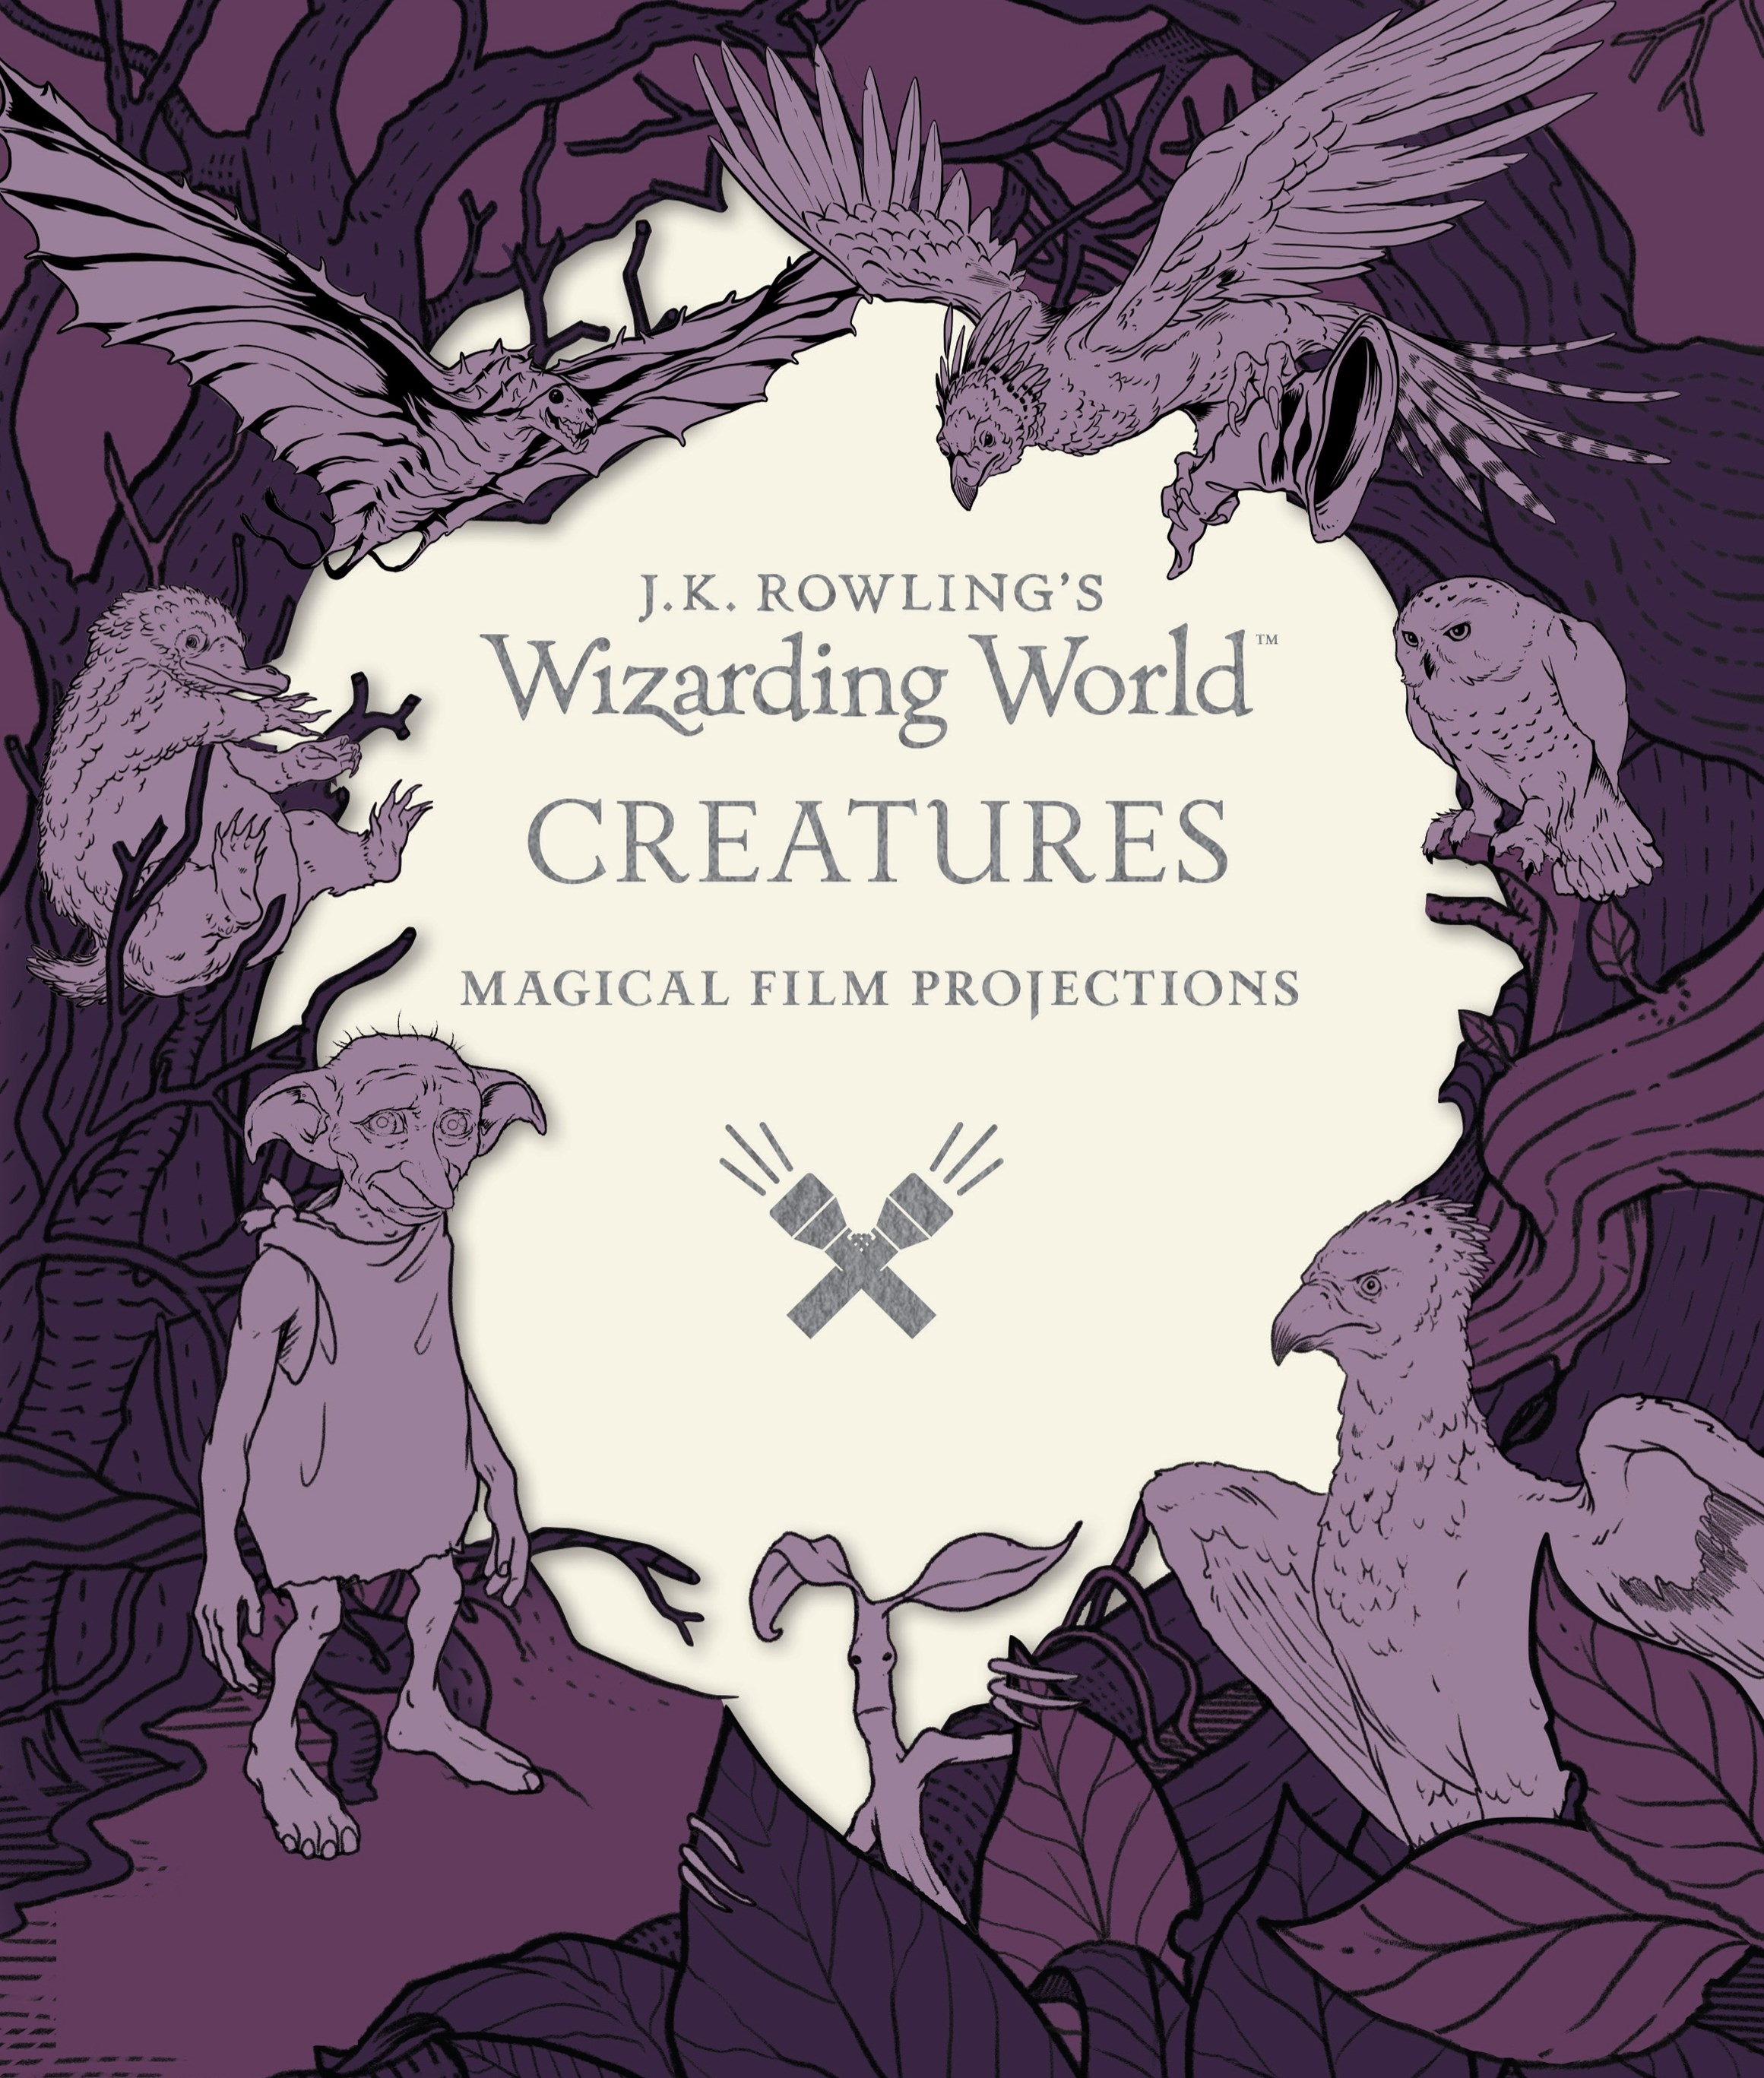 J.K. Rowling's Wizarding World: Magical Film Projections: Creatures